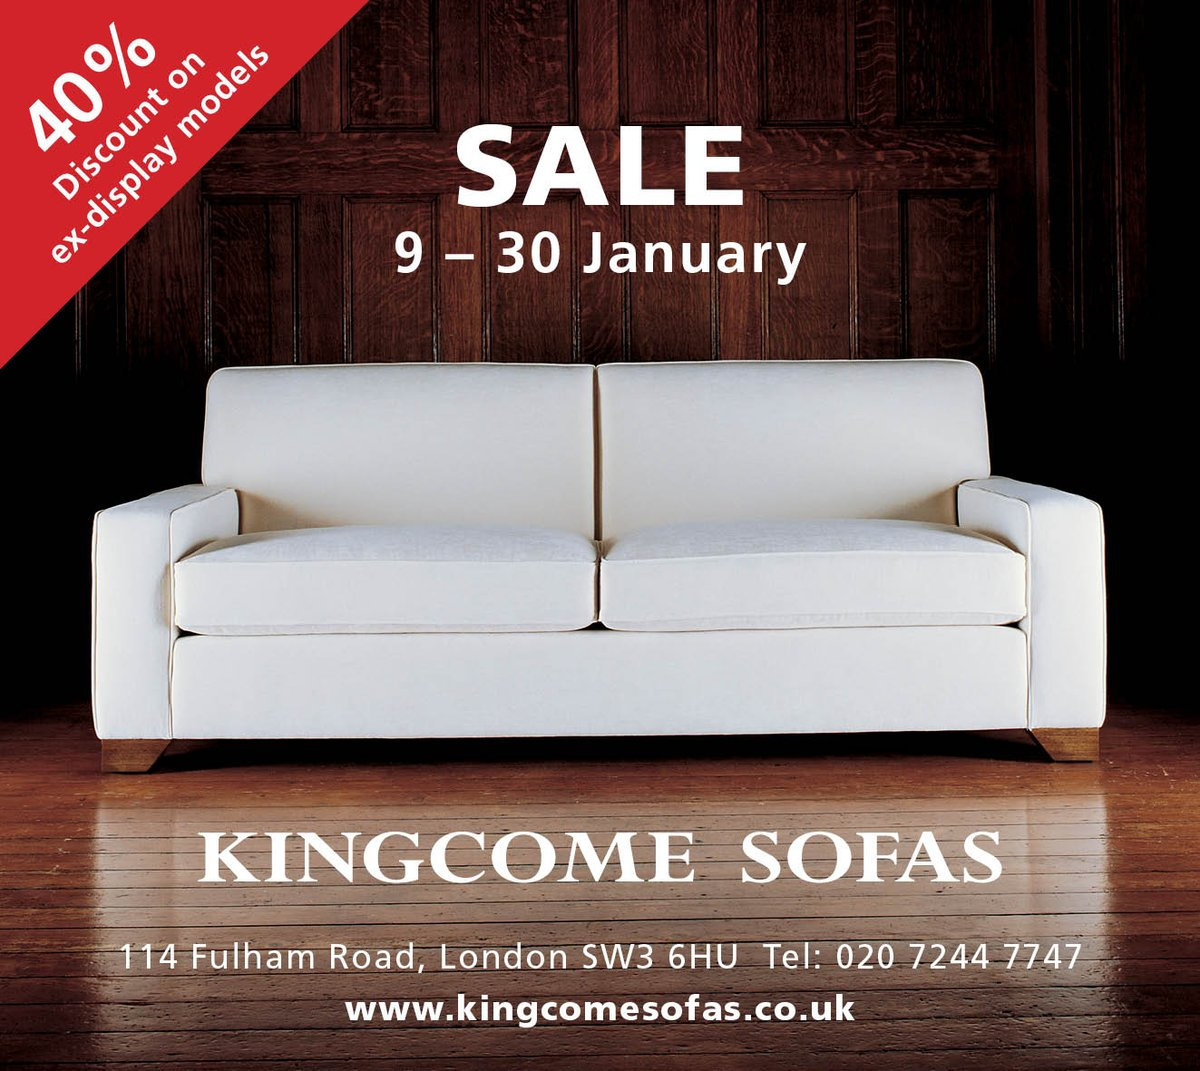 kingcome sofa sale best sets in kolkata colefax and fowler on twitter sofas now 40